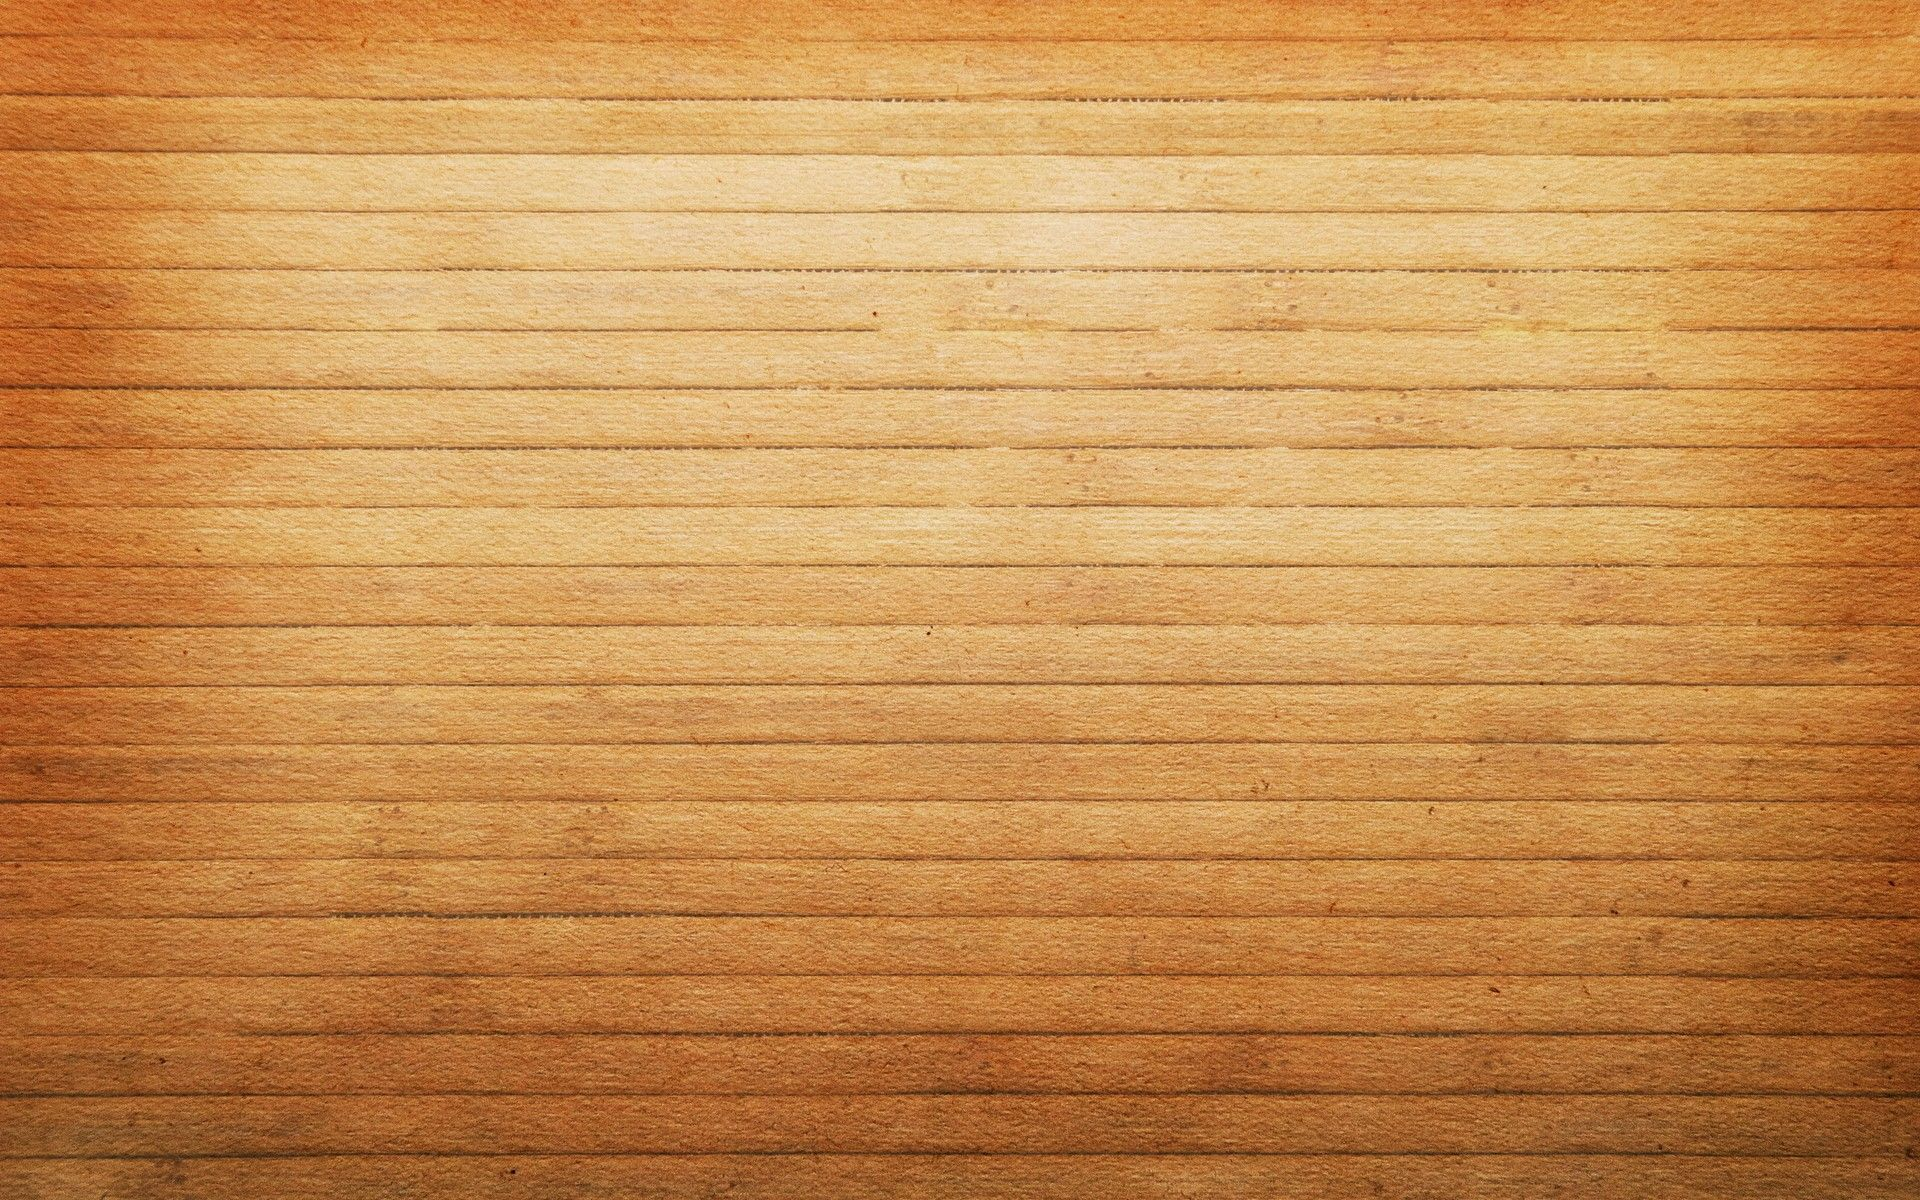 Collection of wood wallpaper hd on hdwallpapers 19201200 wooden collection of wood wallpaper hd on hdwallpapers 19201200 wooden wallpaper hd 31 wallpapers voltagebd Choice Image